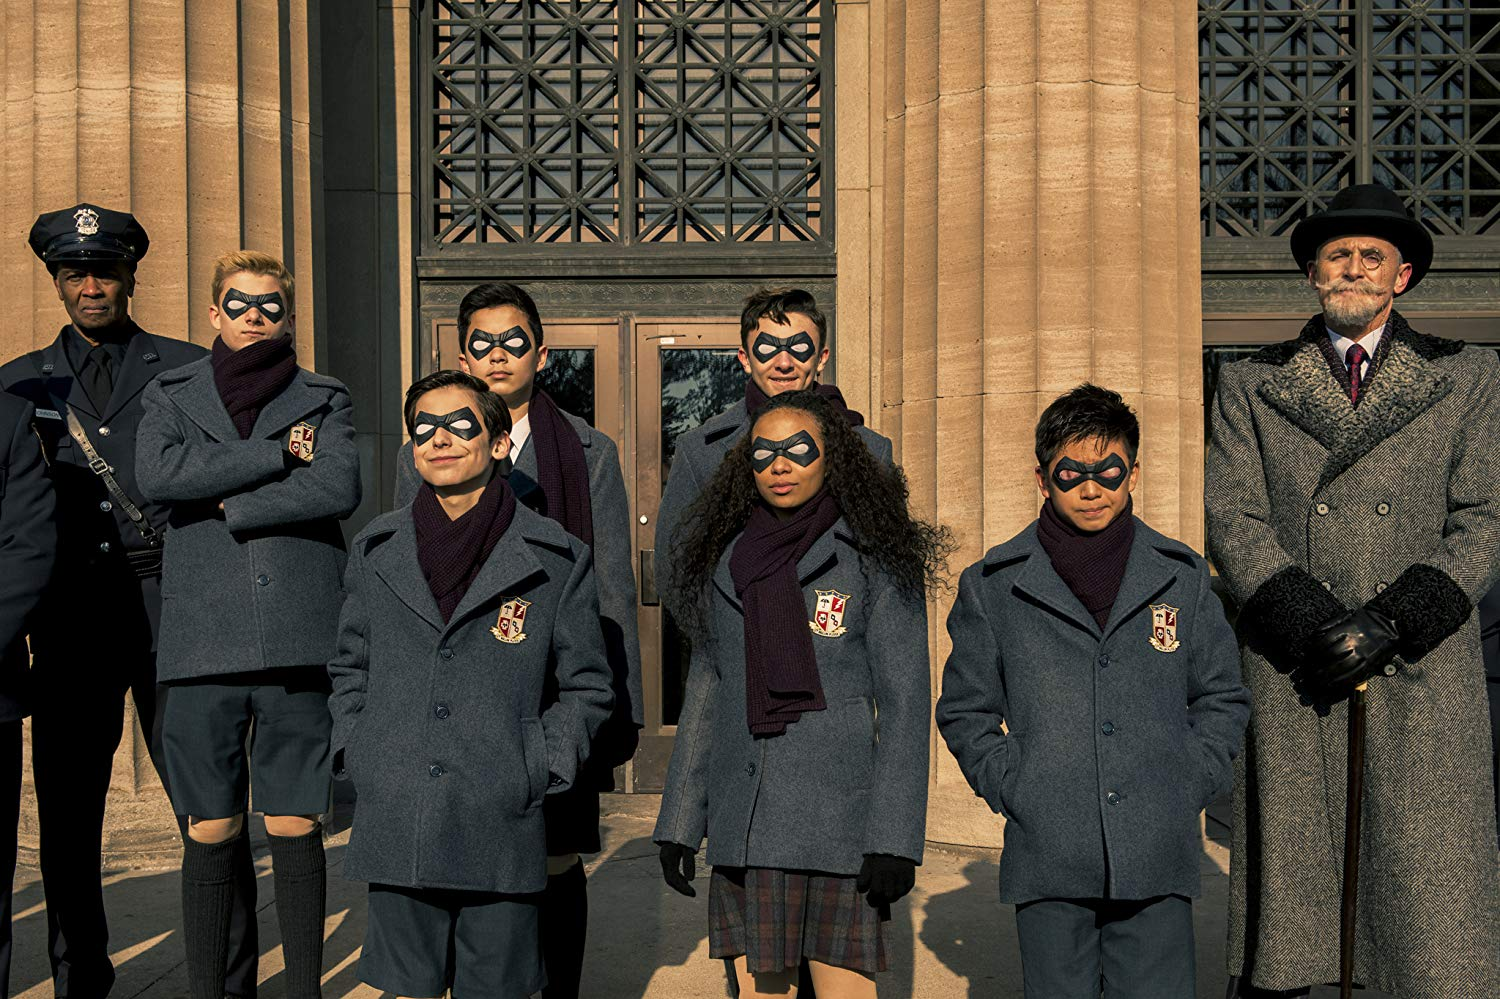 Colm Feore, Dante Albidone, Aidan Gallagher, Cameron Brodeur, Eden Cupid, Ethan Hwang, and Blake Talabis in 'The Umbrella Academy'. (Source: IMDB)